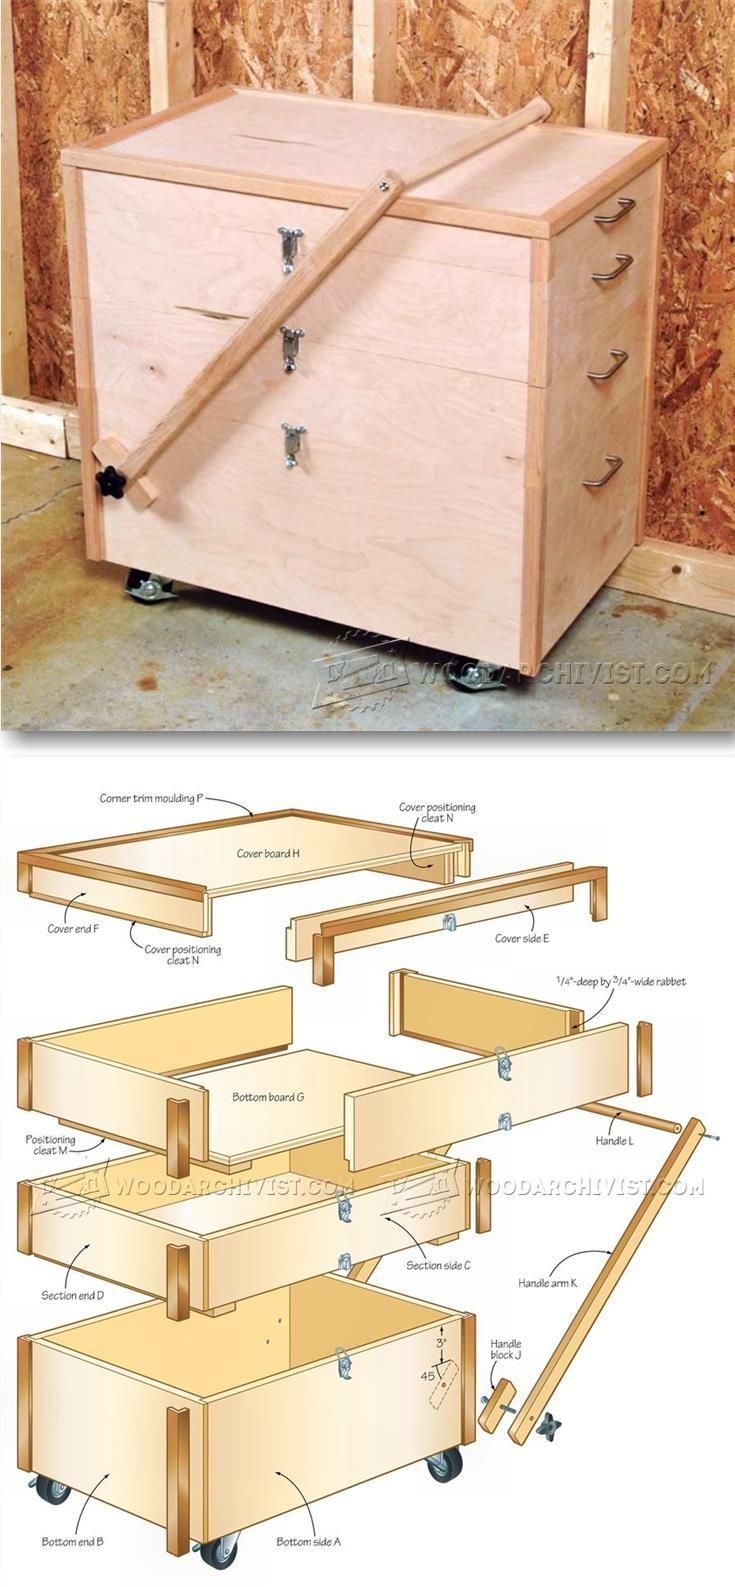 Mobile Tool Chest Plans - Workshop Solutions Projects, Tips and Tricks | WoodArchivist.com